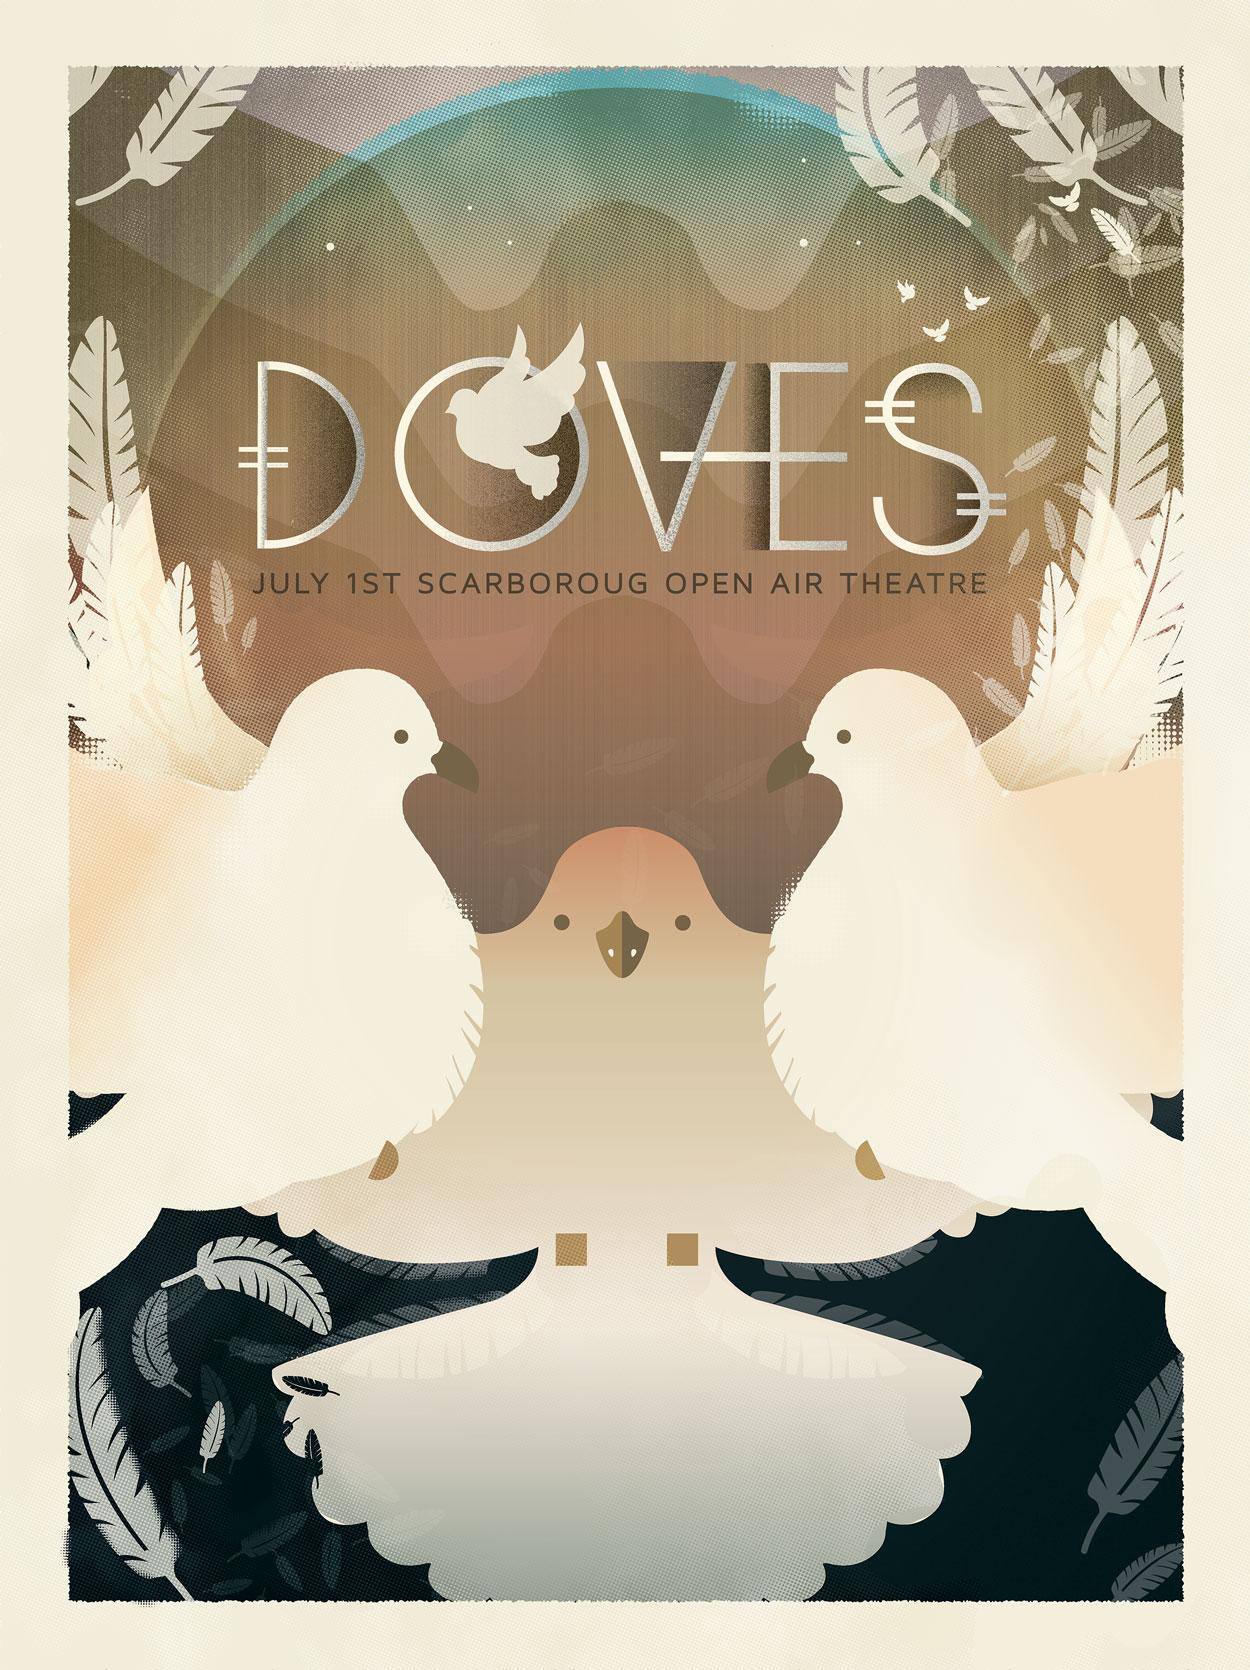 The Doves - image 4 - student project